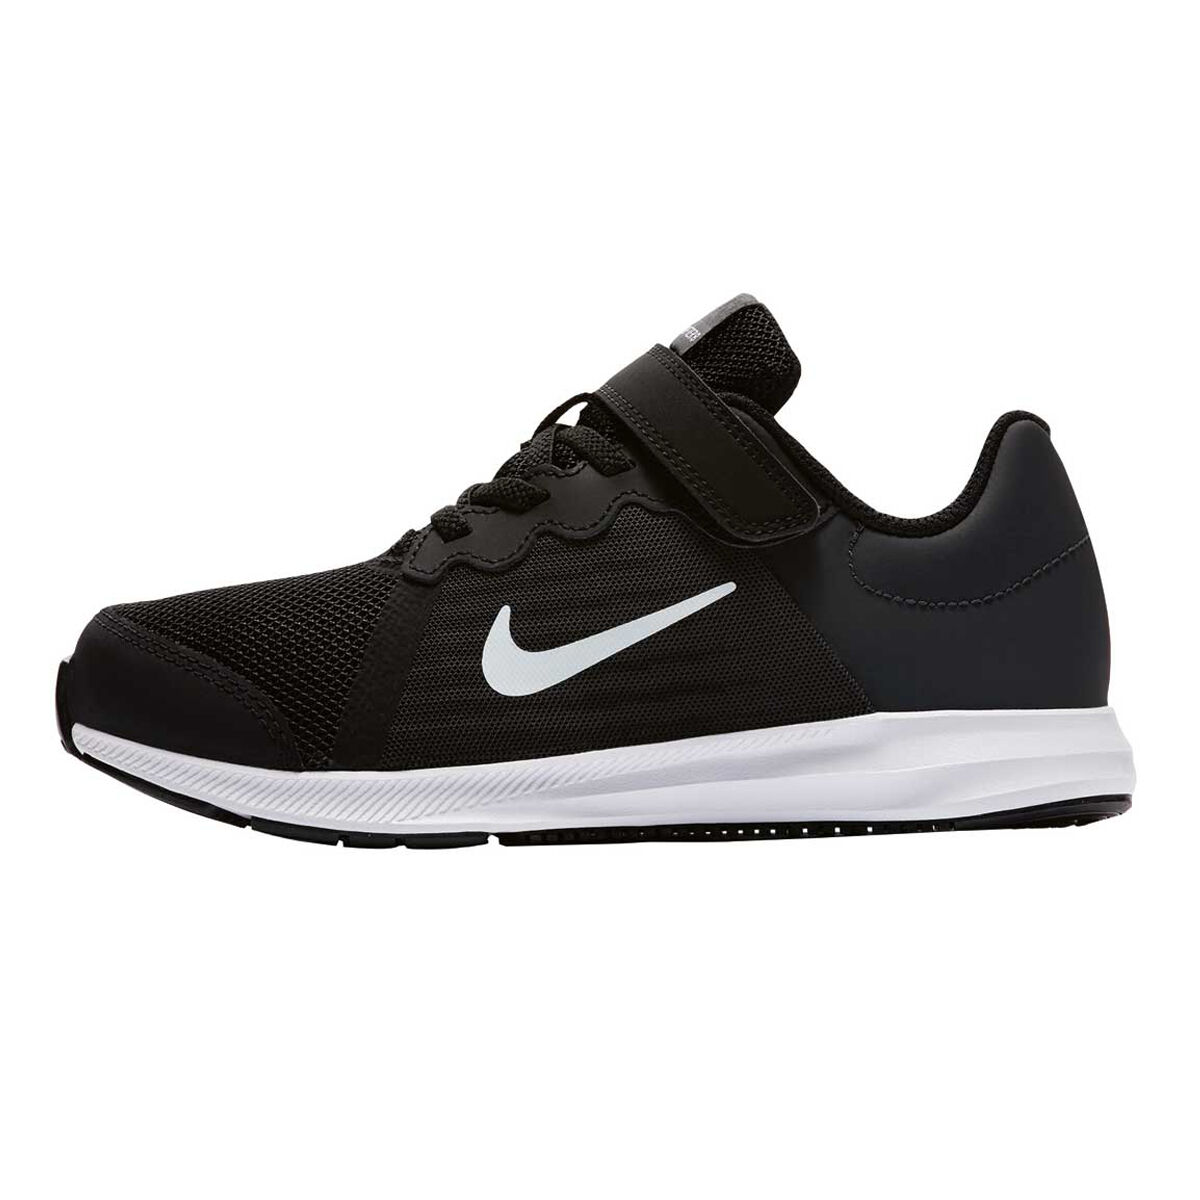 827fd3b0f64f ... new style nike downshifter 8 junior running shoes black white us 11 black  white 91b4b 2e1ab ...